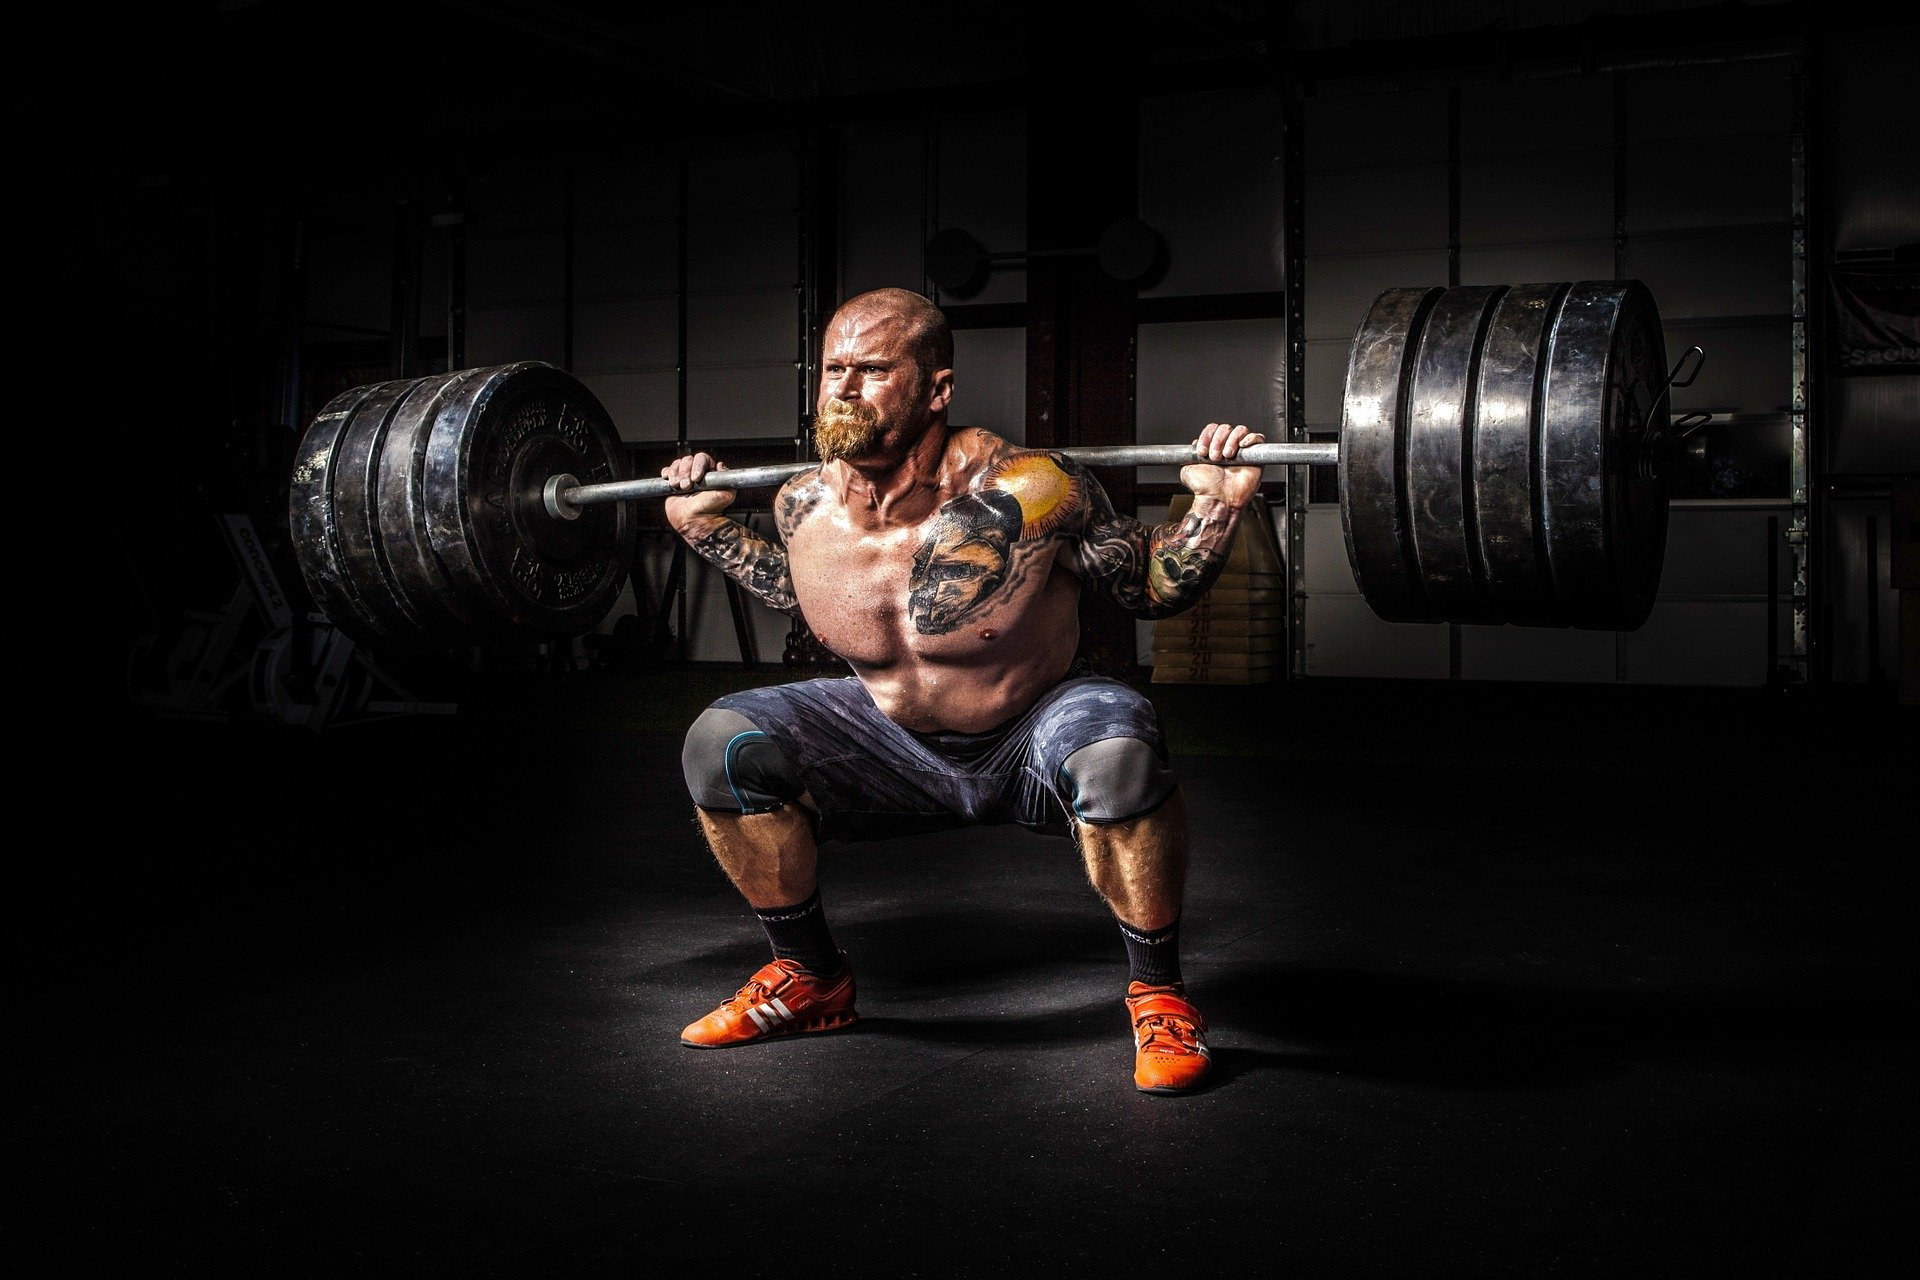 strength squatting working out